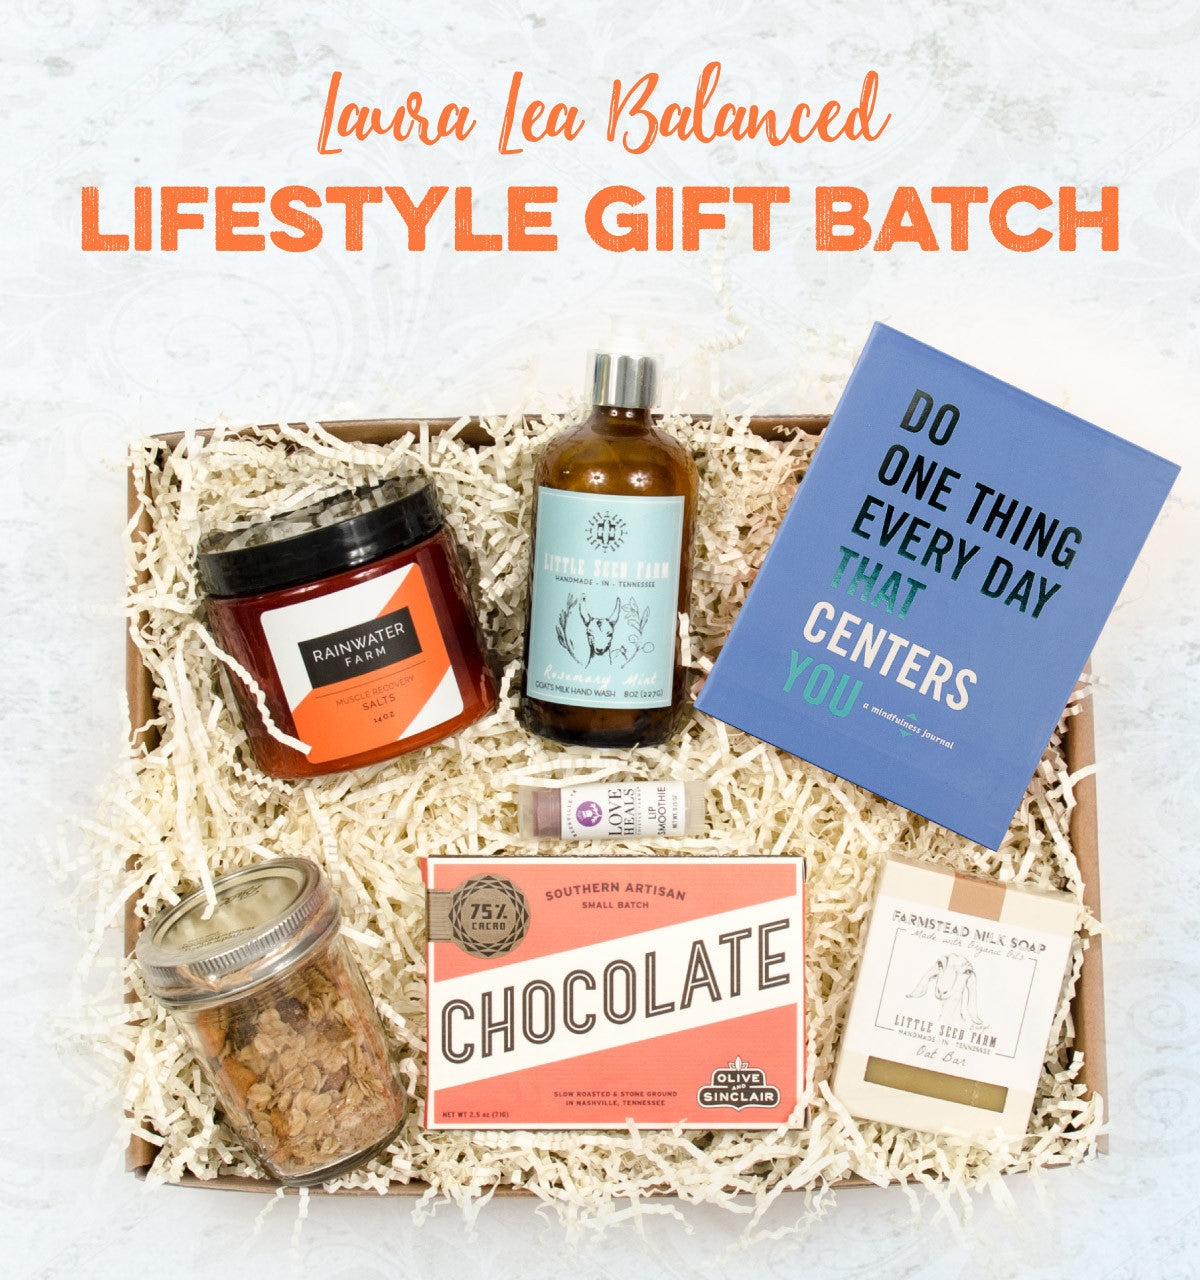 Laura Lea Balanced Lifestyle Gift Batch